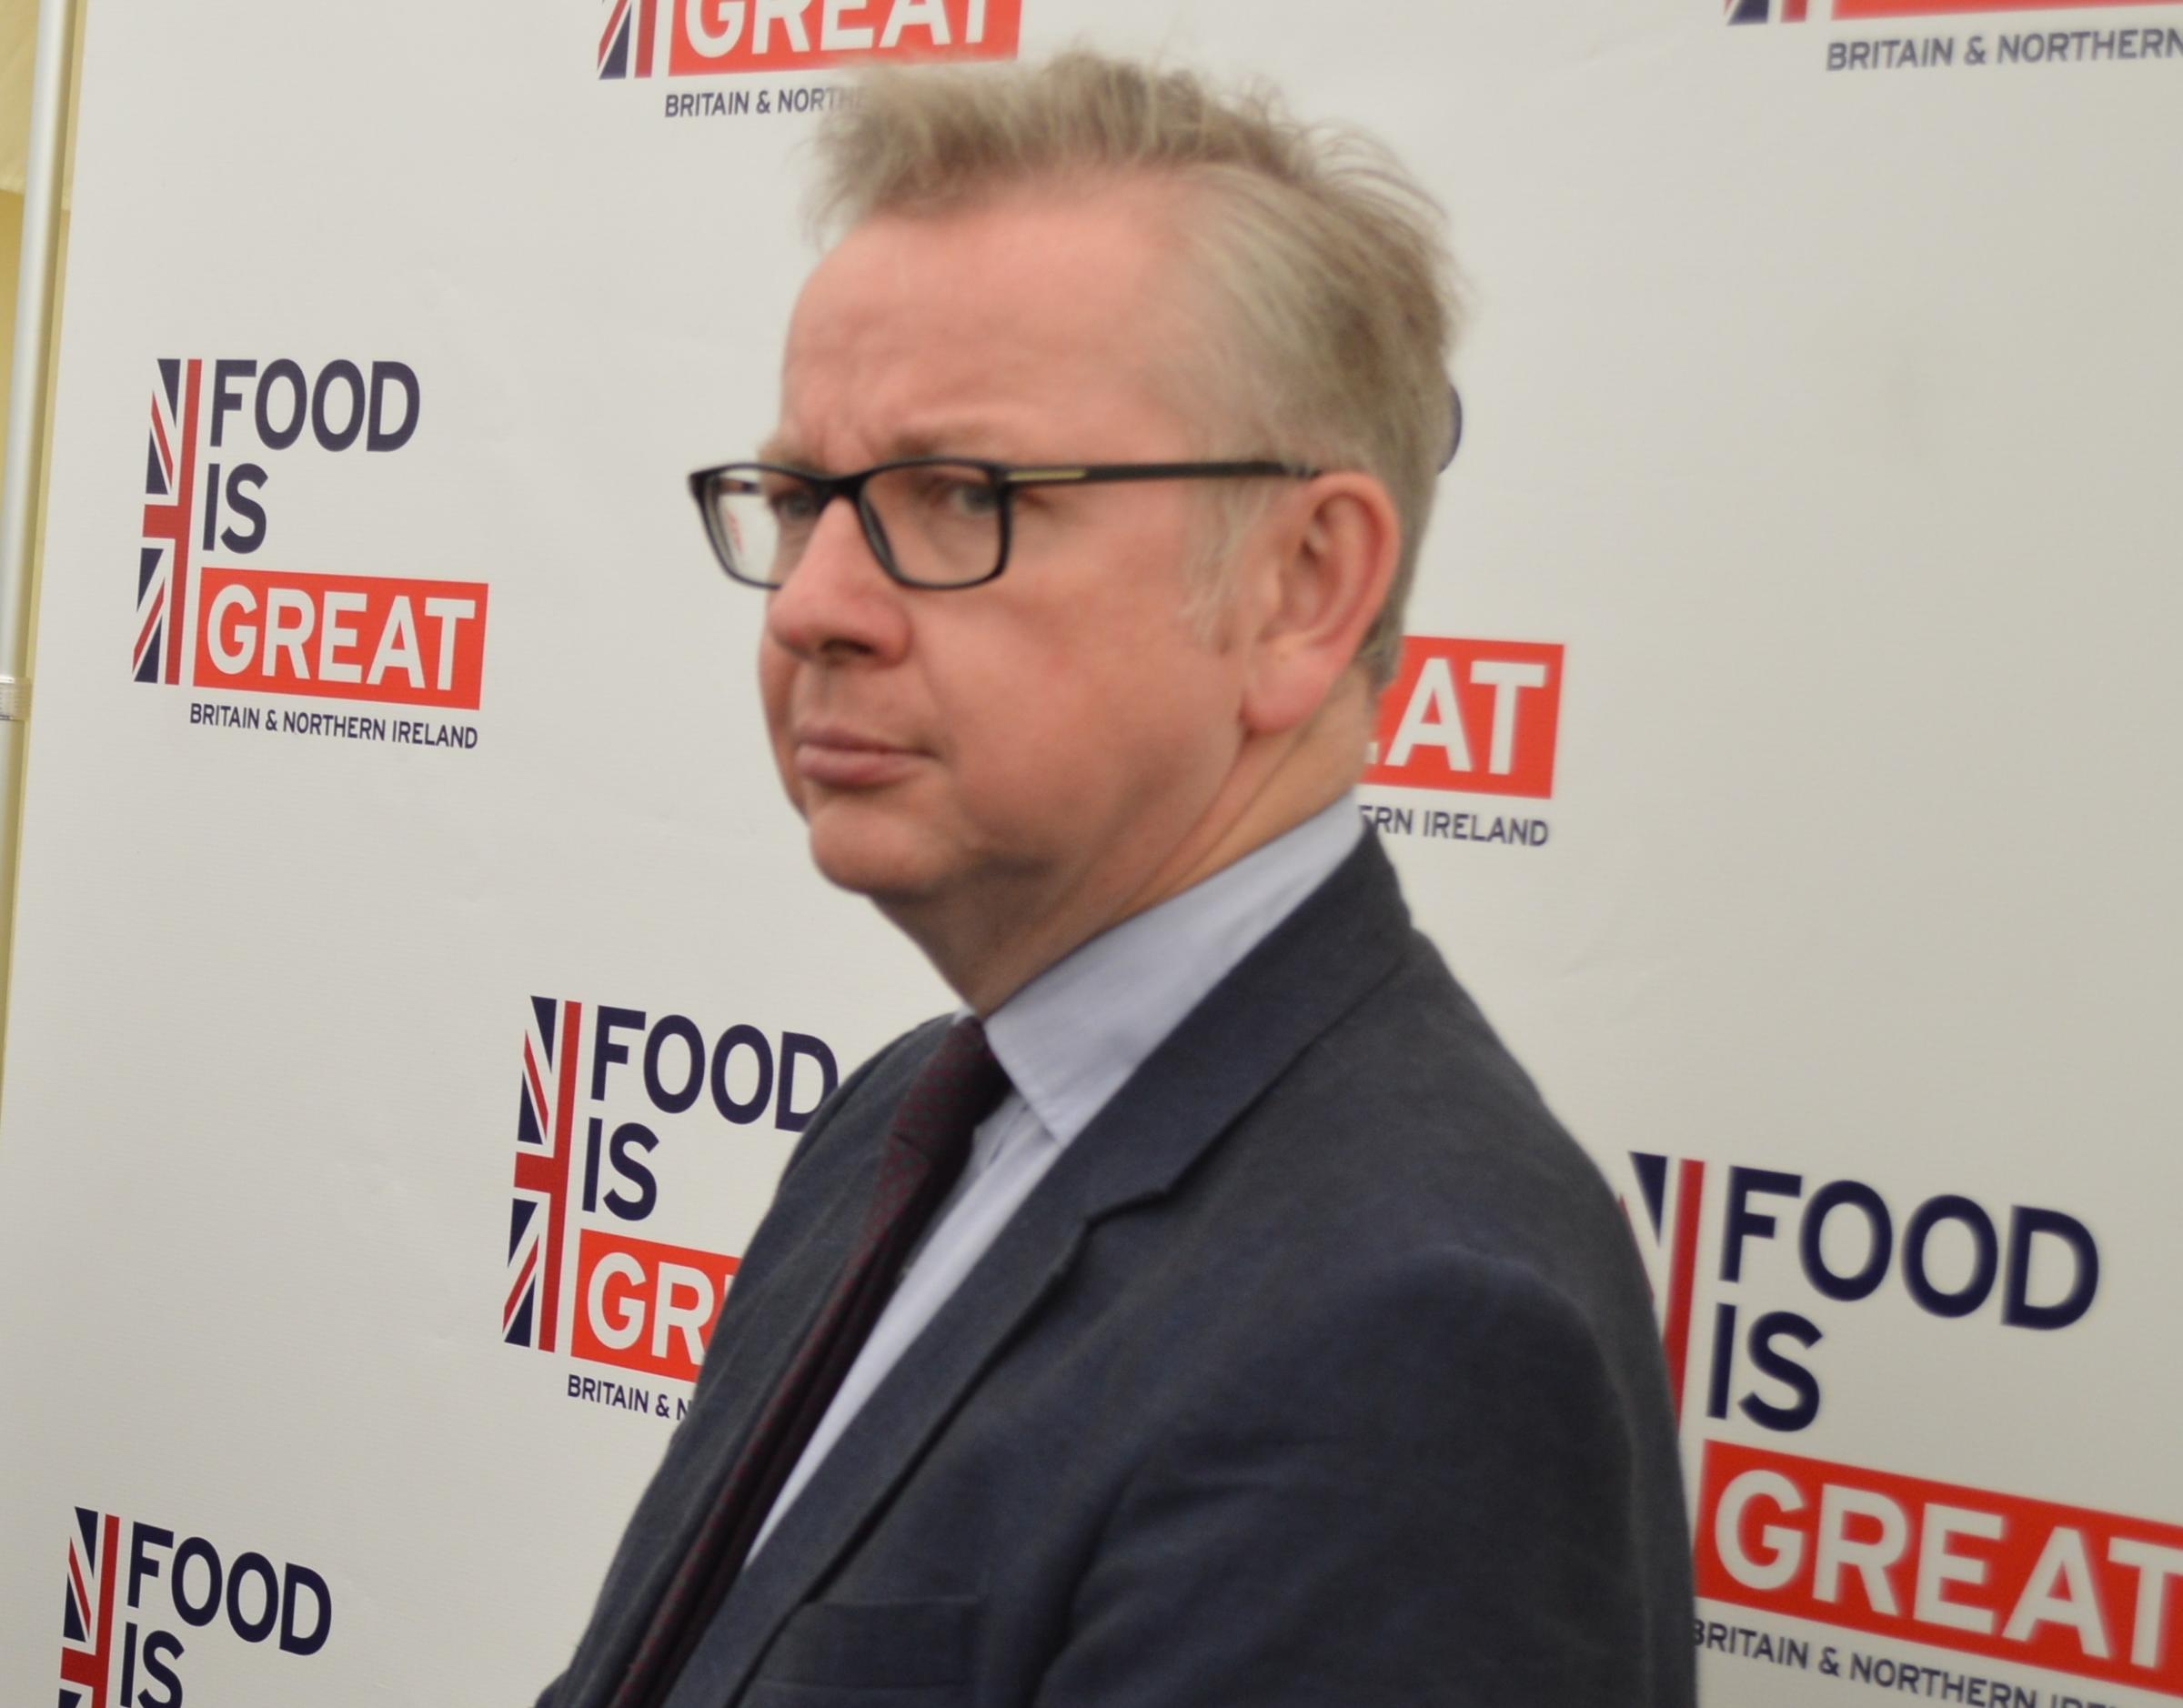 DEFRA minister Michael Gove has said he wants the UK's post-Brexit agri-policy to be 'greener' than the CAP